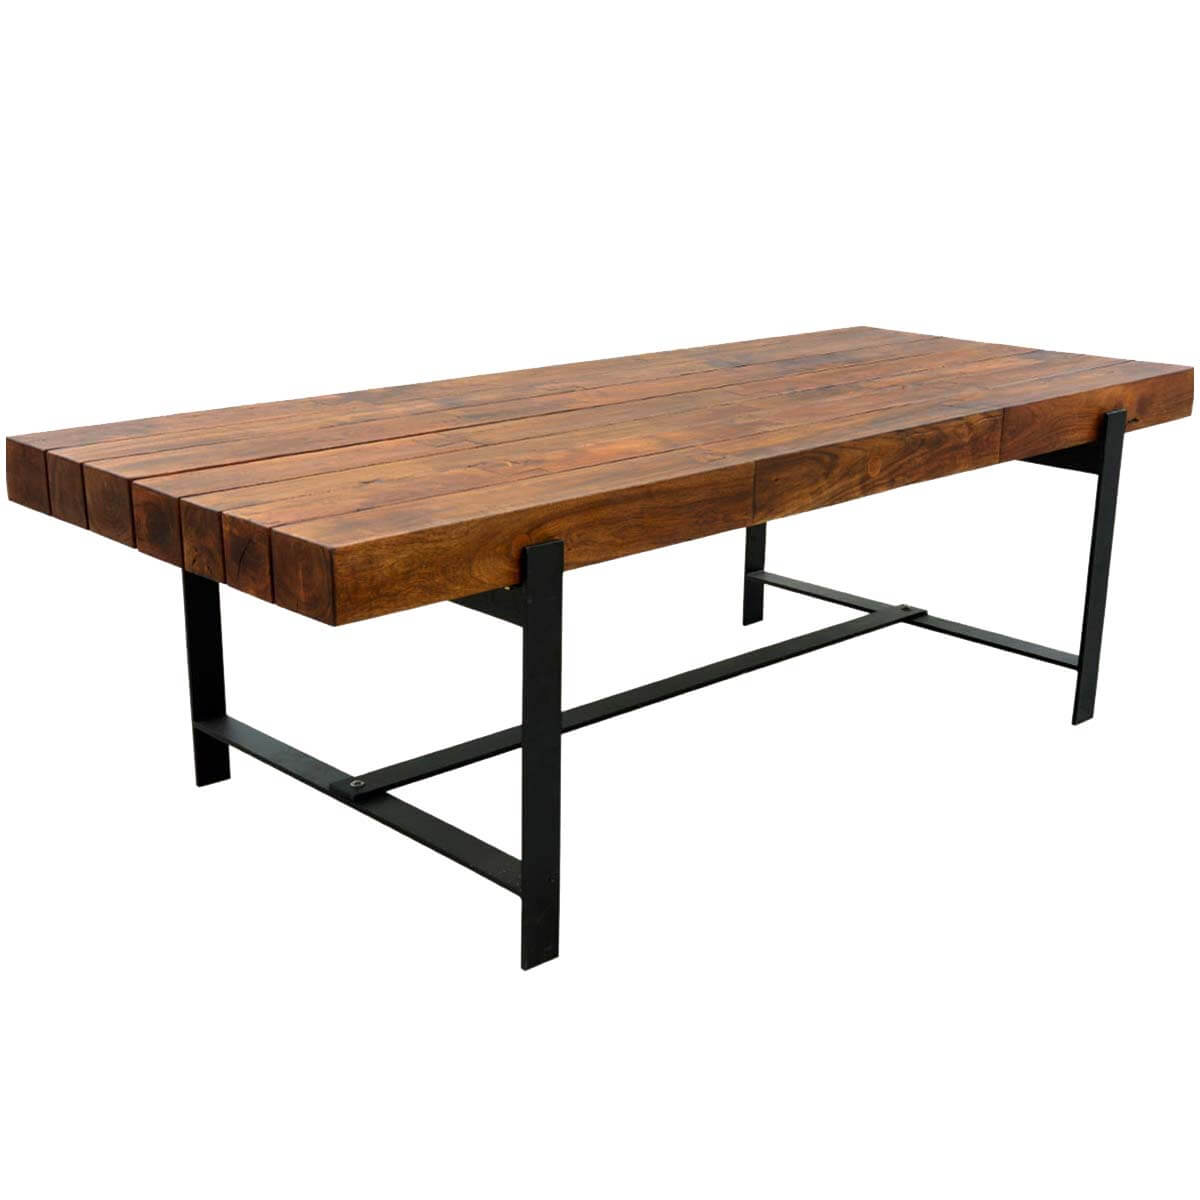 Industrial iron acacia wood 94 large rustic dining table - Industrial kitchen tables ...